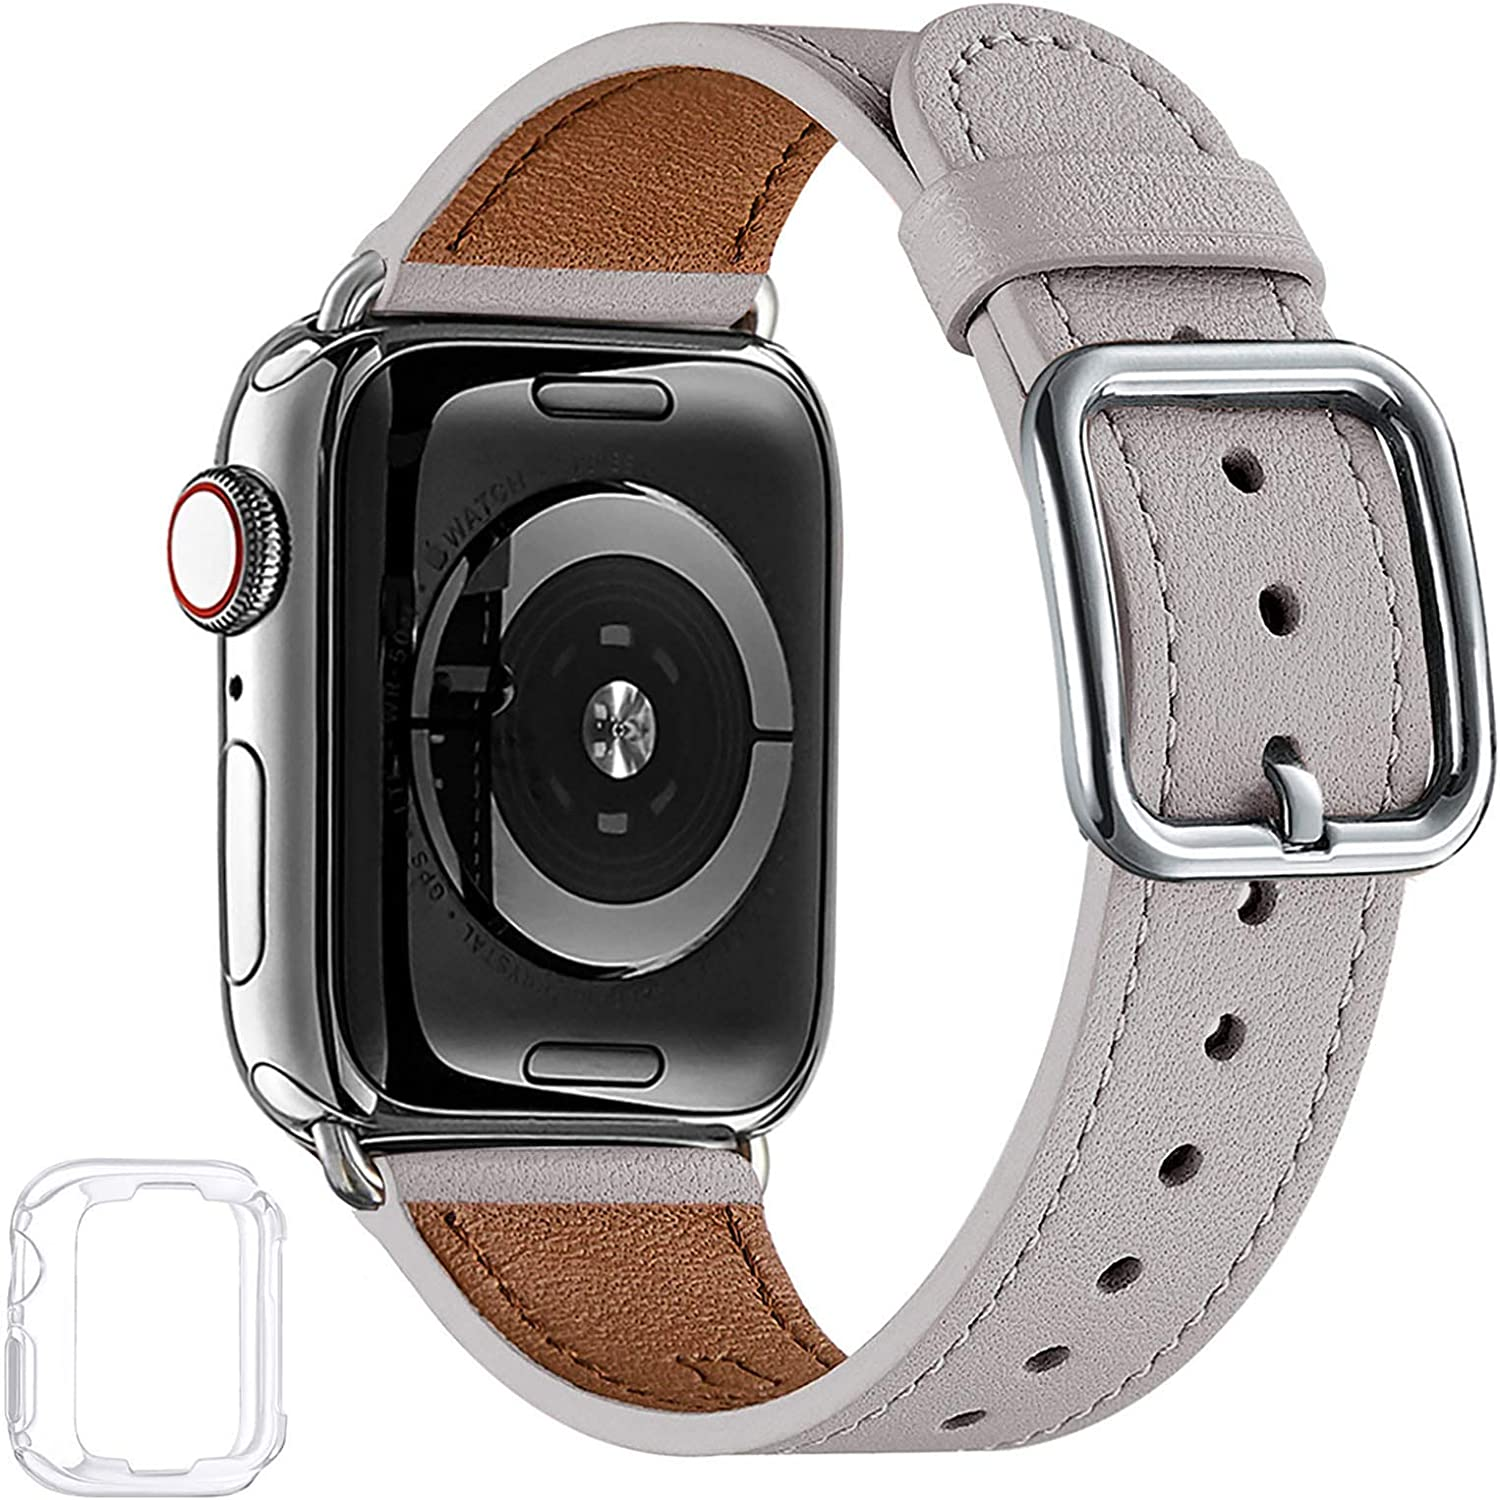 MNBVCXZ Compatible with Apple Watch Band 38mm 40mm 42mm 44mm Women Men Girls Boys Genuine Leather Replacement Strap for iWatch Series 6 5 4 3 2 1 iWatch SE (Light gray/Silver, 38mm 40mm)